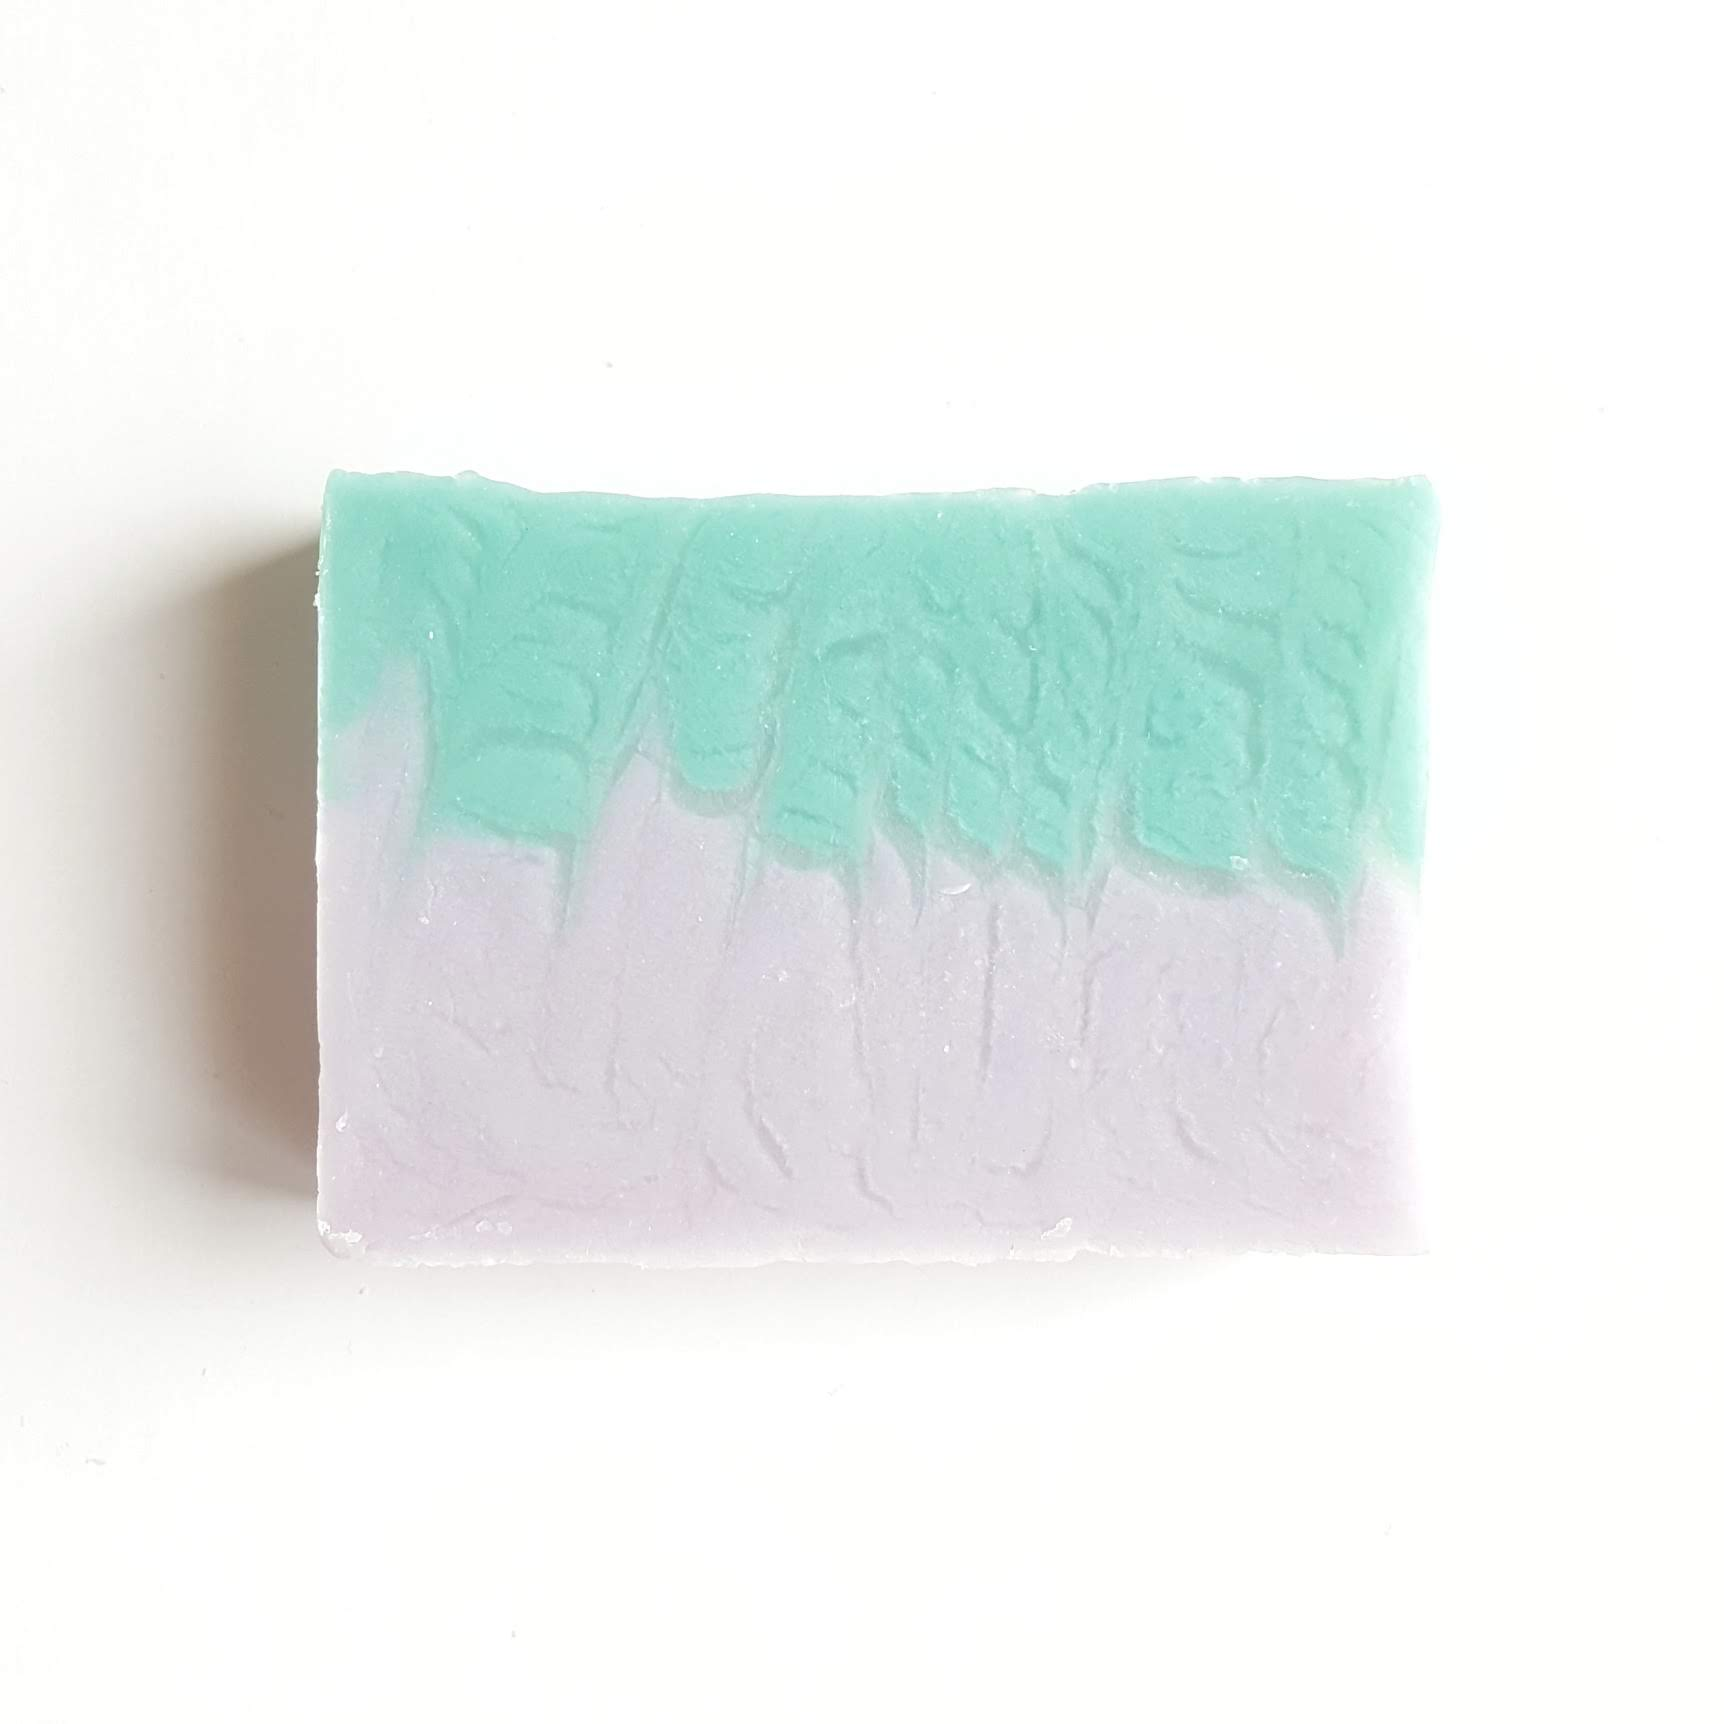 Lullaby Soap